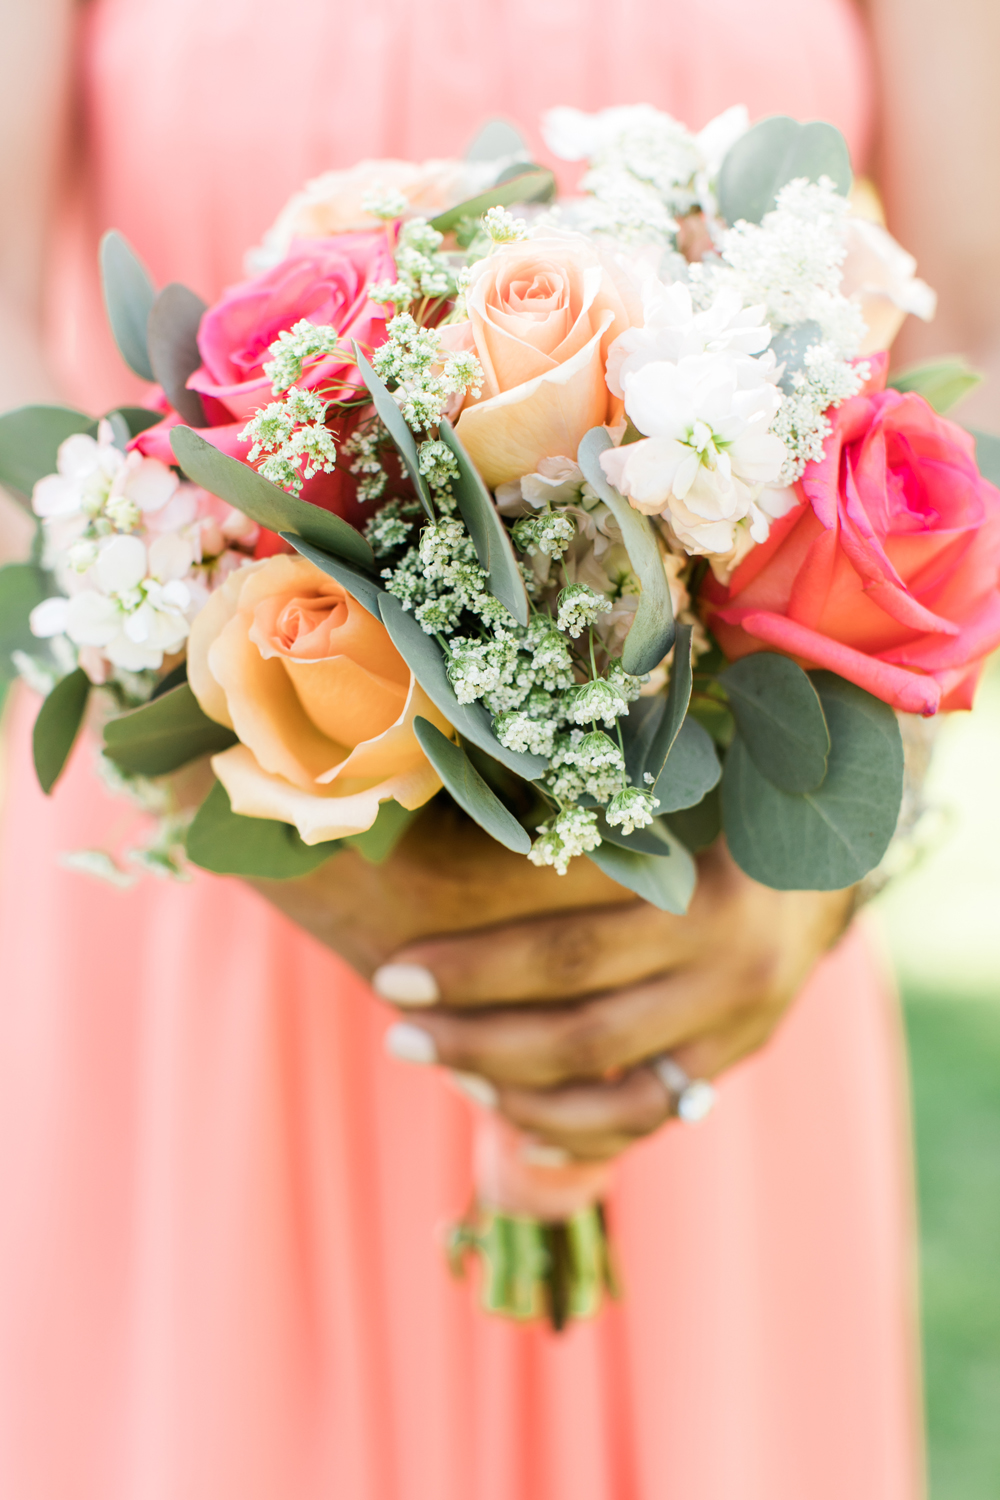 1f94e-pretty-in-pink-vintage-hollywood-fiesta-wedding-bridesmaid-and-bouquet.jpg